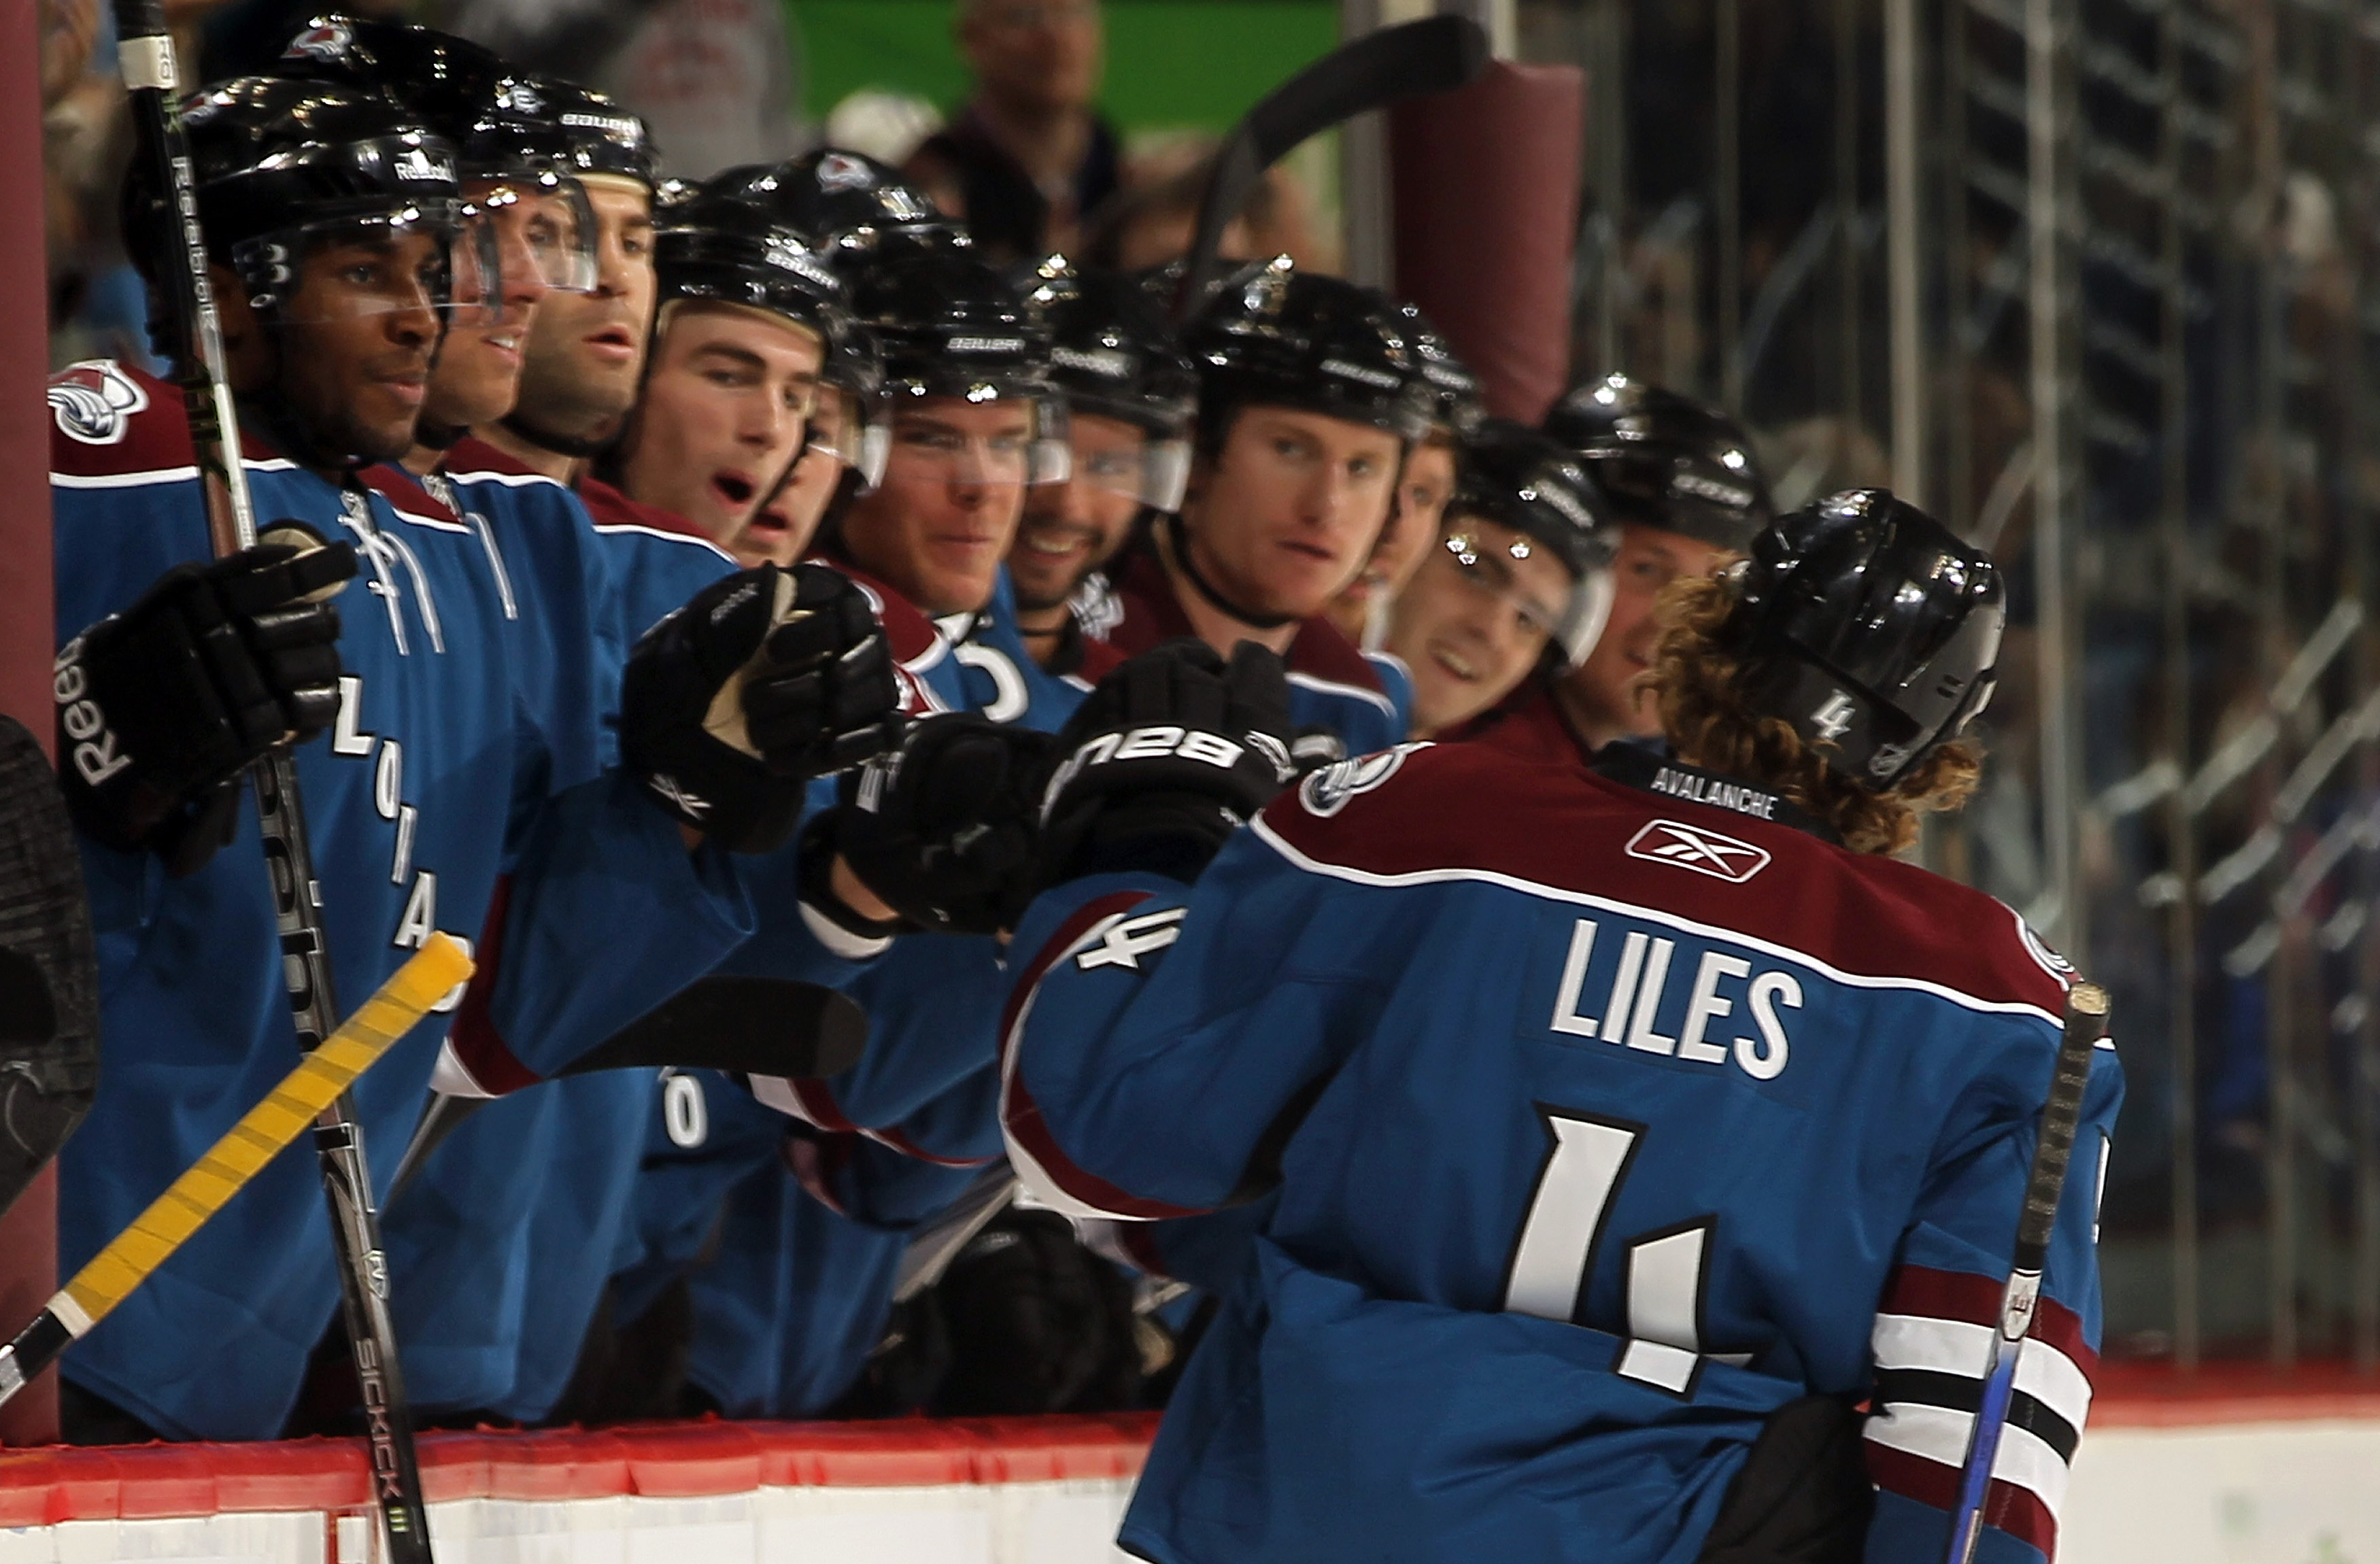 DENVER - NOVEMBER 15:  Defenseman John-Michael Liles #4 of the Colorado Avalanche is congratulated for his goal against the St. Louis Blues at the Pepsi Center on November 15, 2010 in Denver, Colorado. Liles had two goals as the Avalanche defeated the Blu